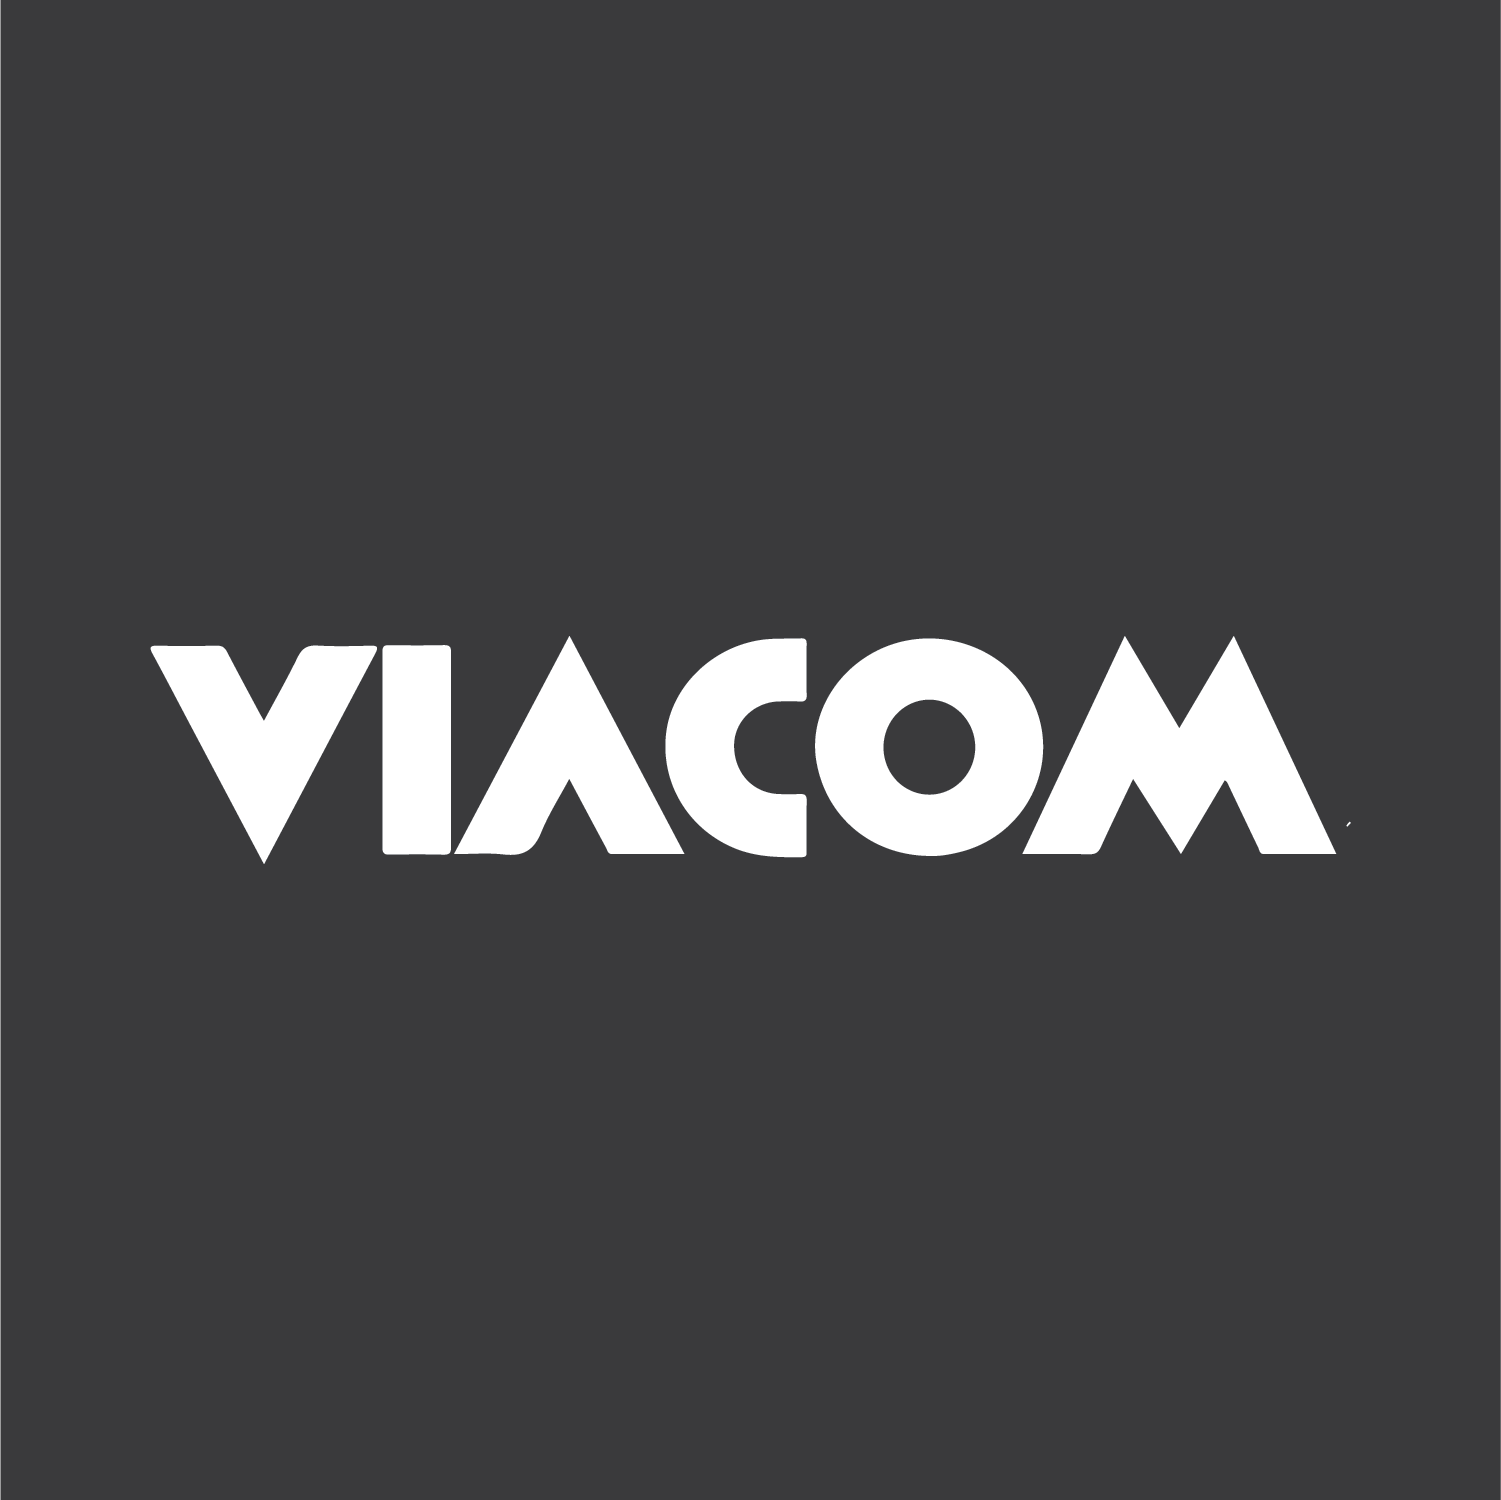 Yes! Viacom is the 5th and last Migo. You really know your stuff.